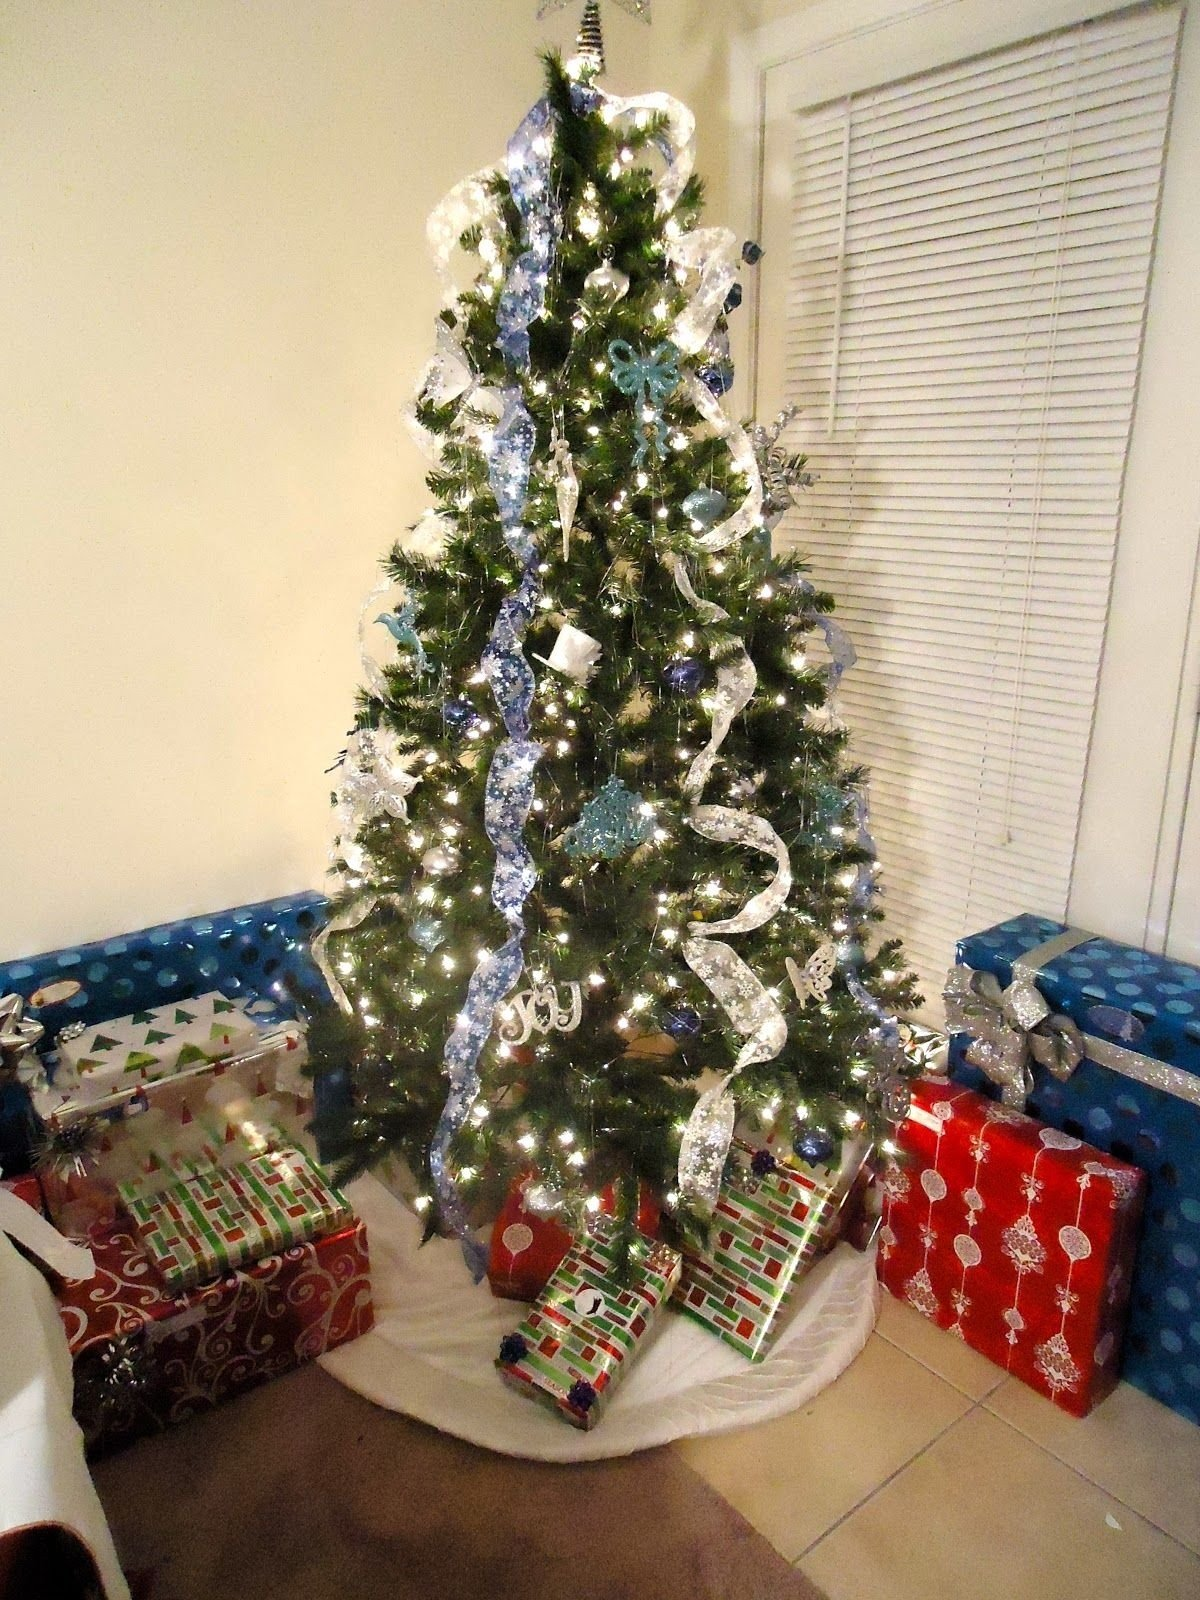 10 Fabulous Cheap Christmas Tree Decorating Ideas houses are decorated exchanging gifts christmas trees are